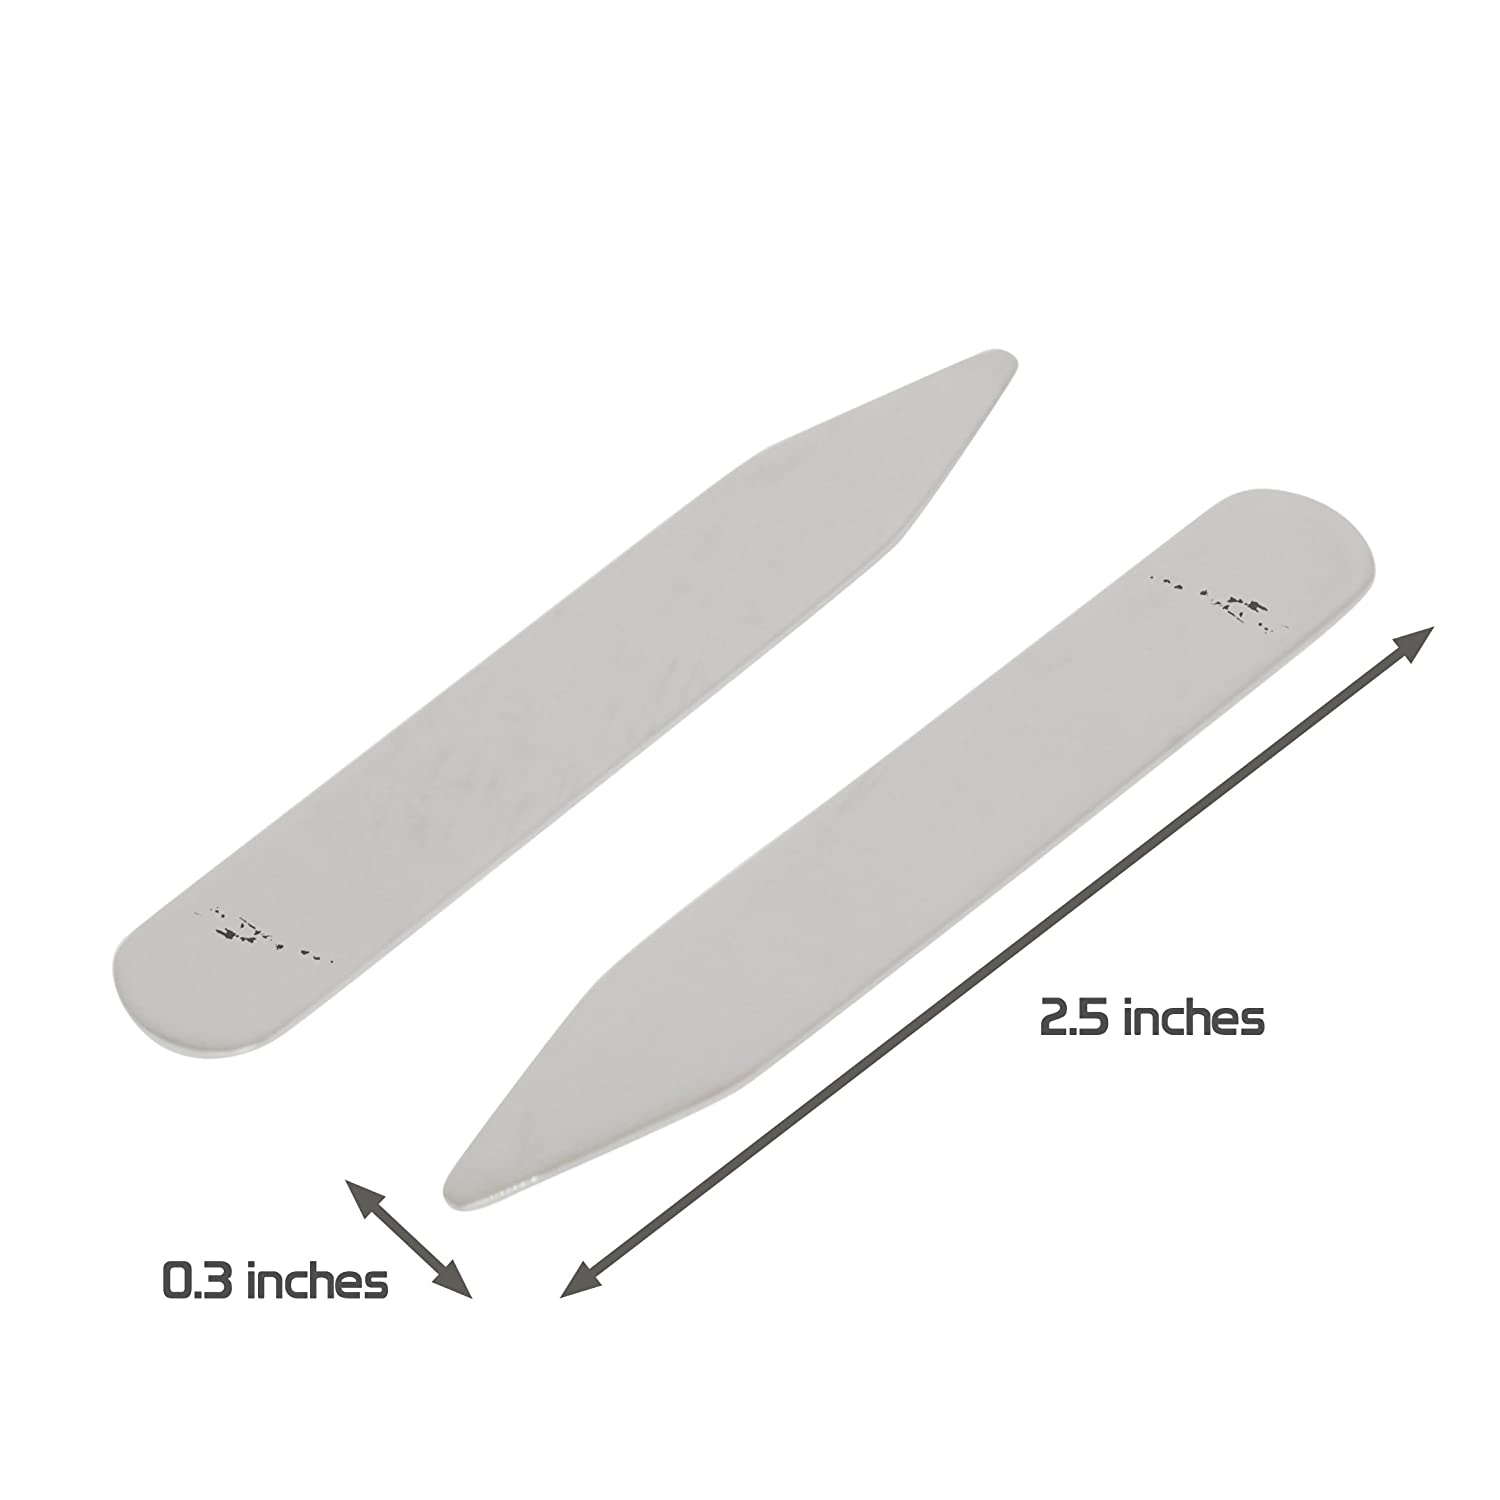 Made In USA MODERN GOODS SHOP Stainless Steel Collar Stays With Laser Engraved Vanuatu Design 2.5 Inch Metal Collar Stiffeners